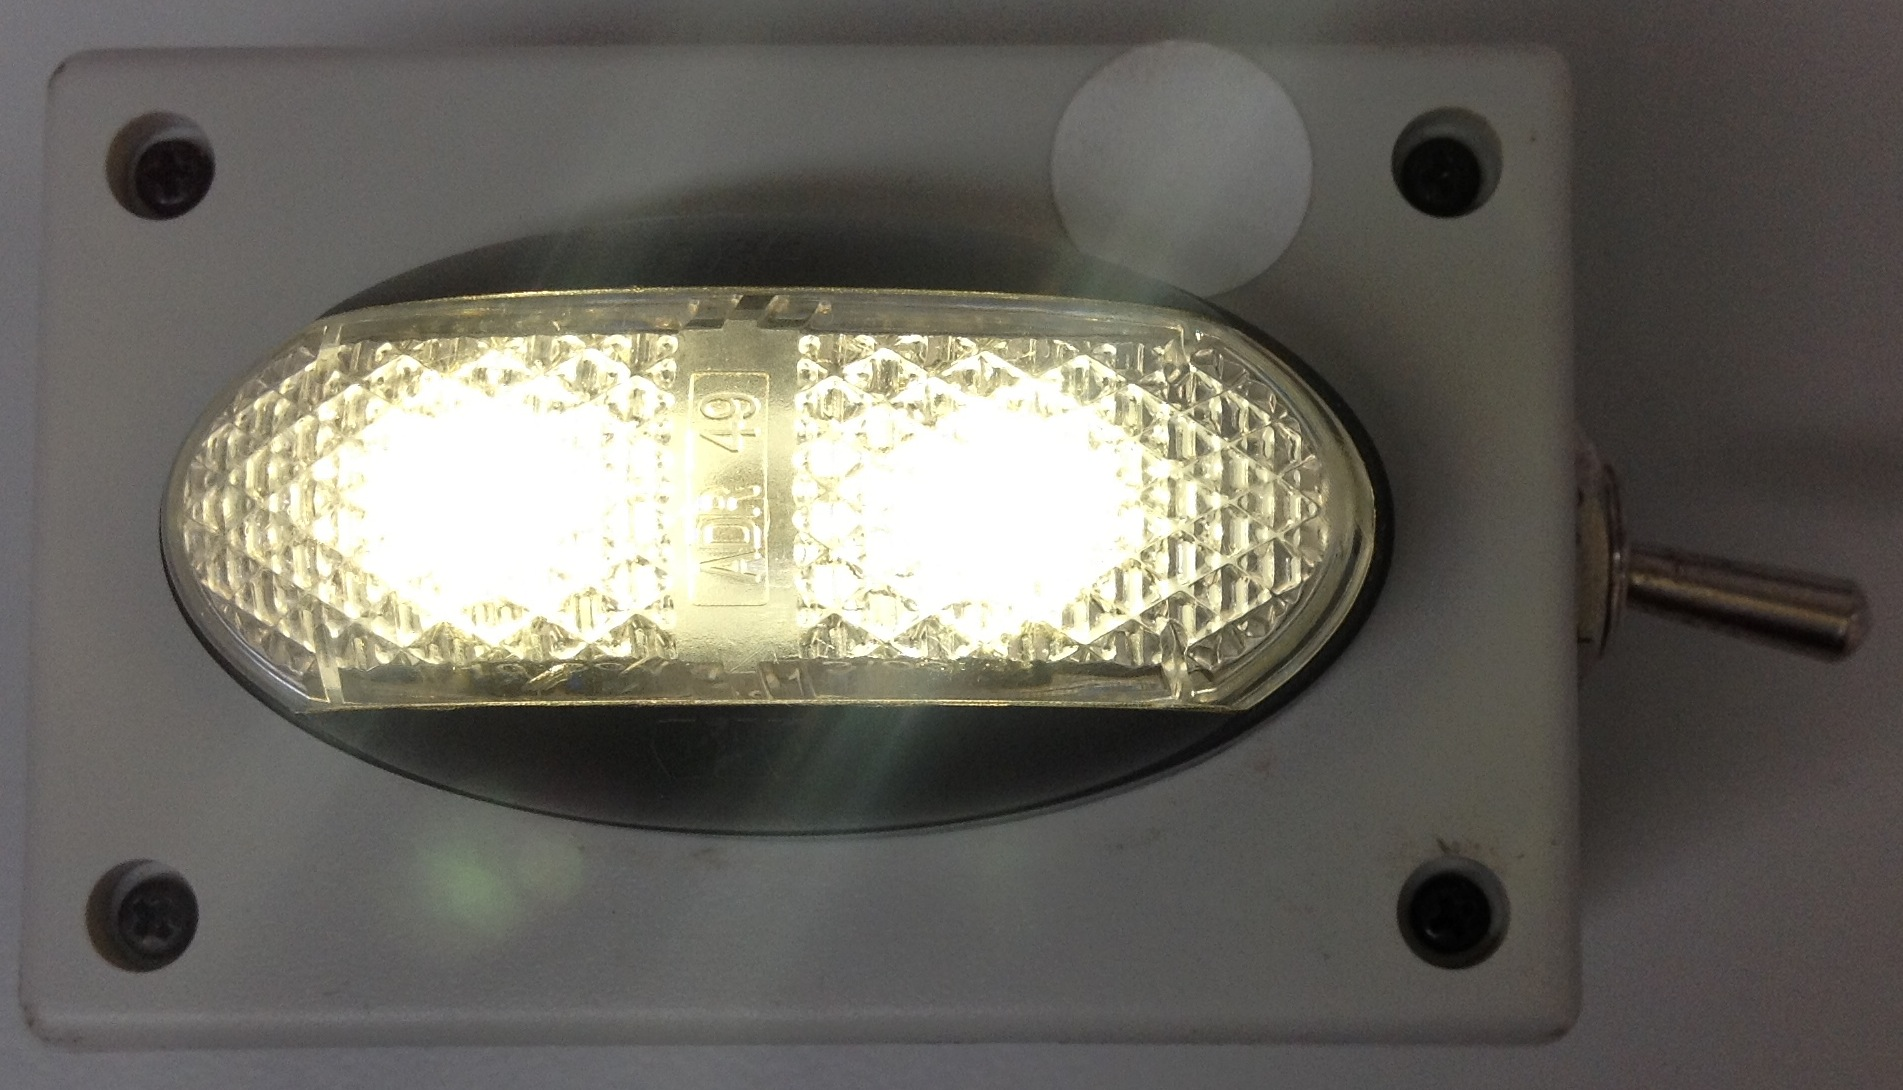 br1w-white-oversize-magnetic-clearance-light-by-ultimate-led.jpg